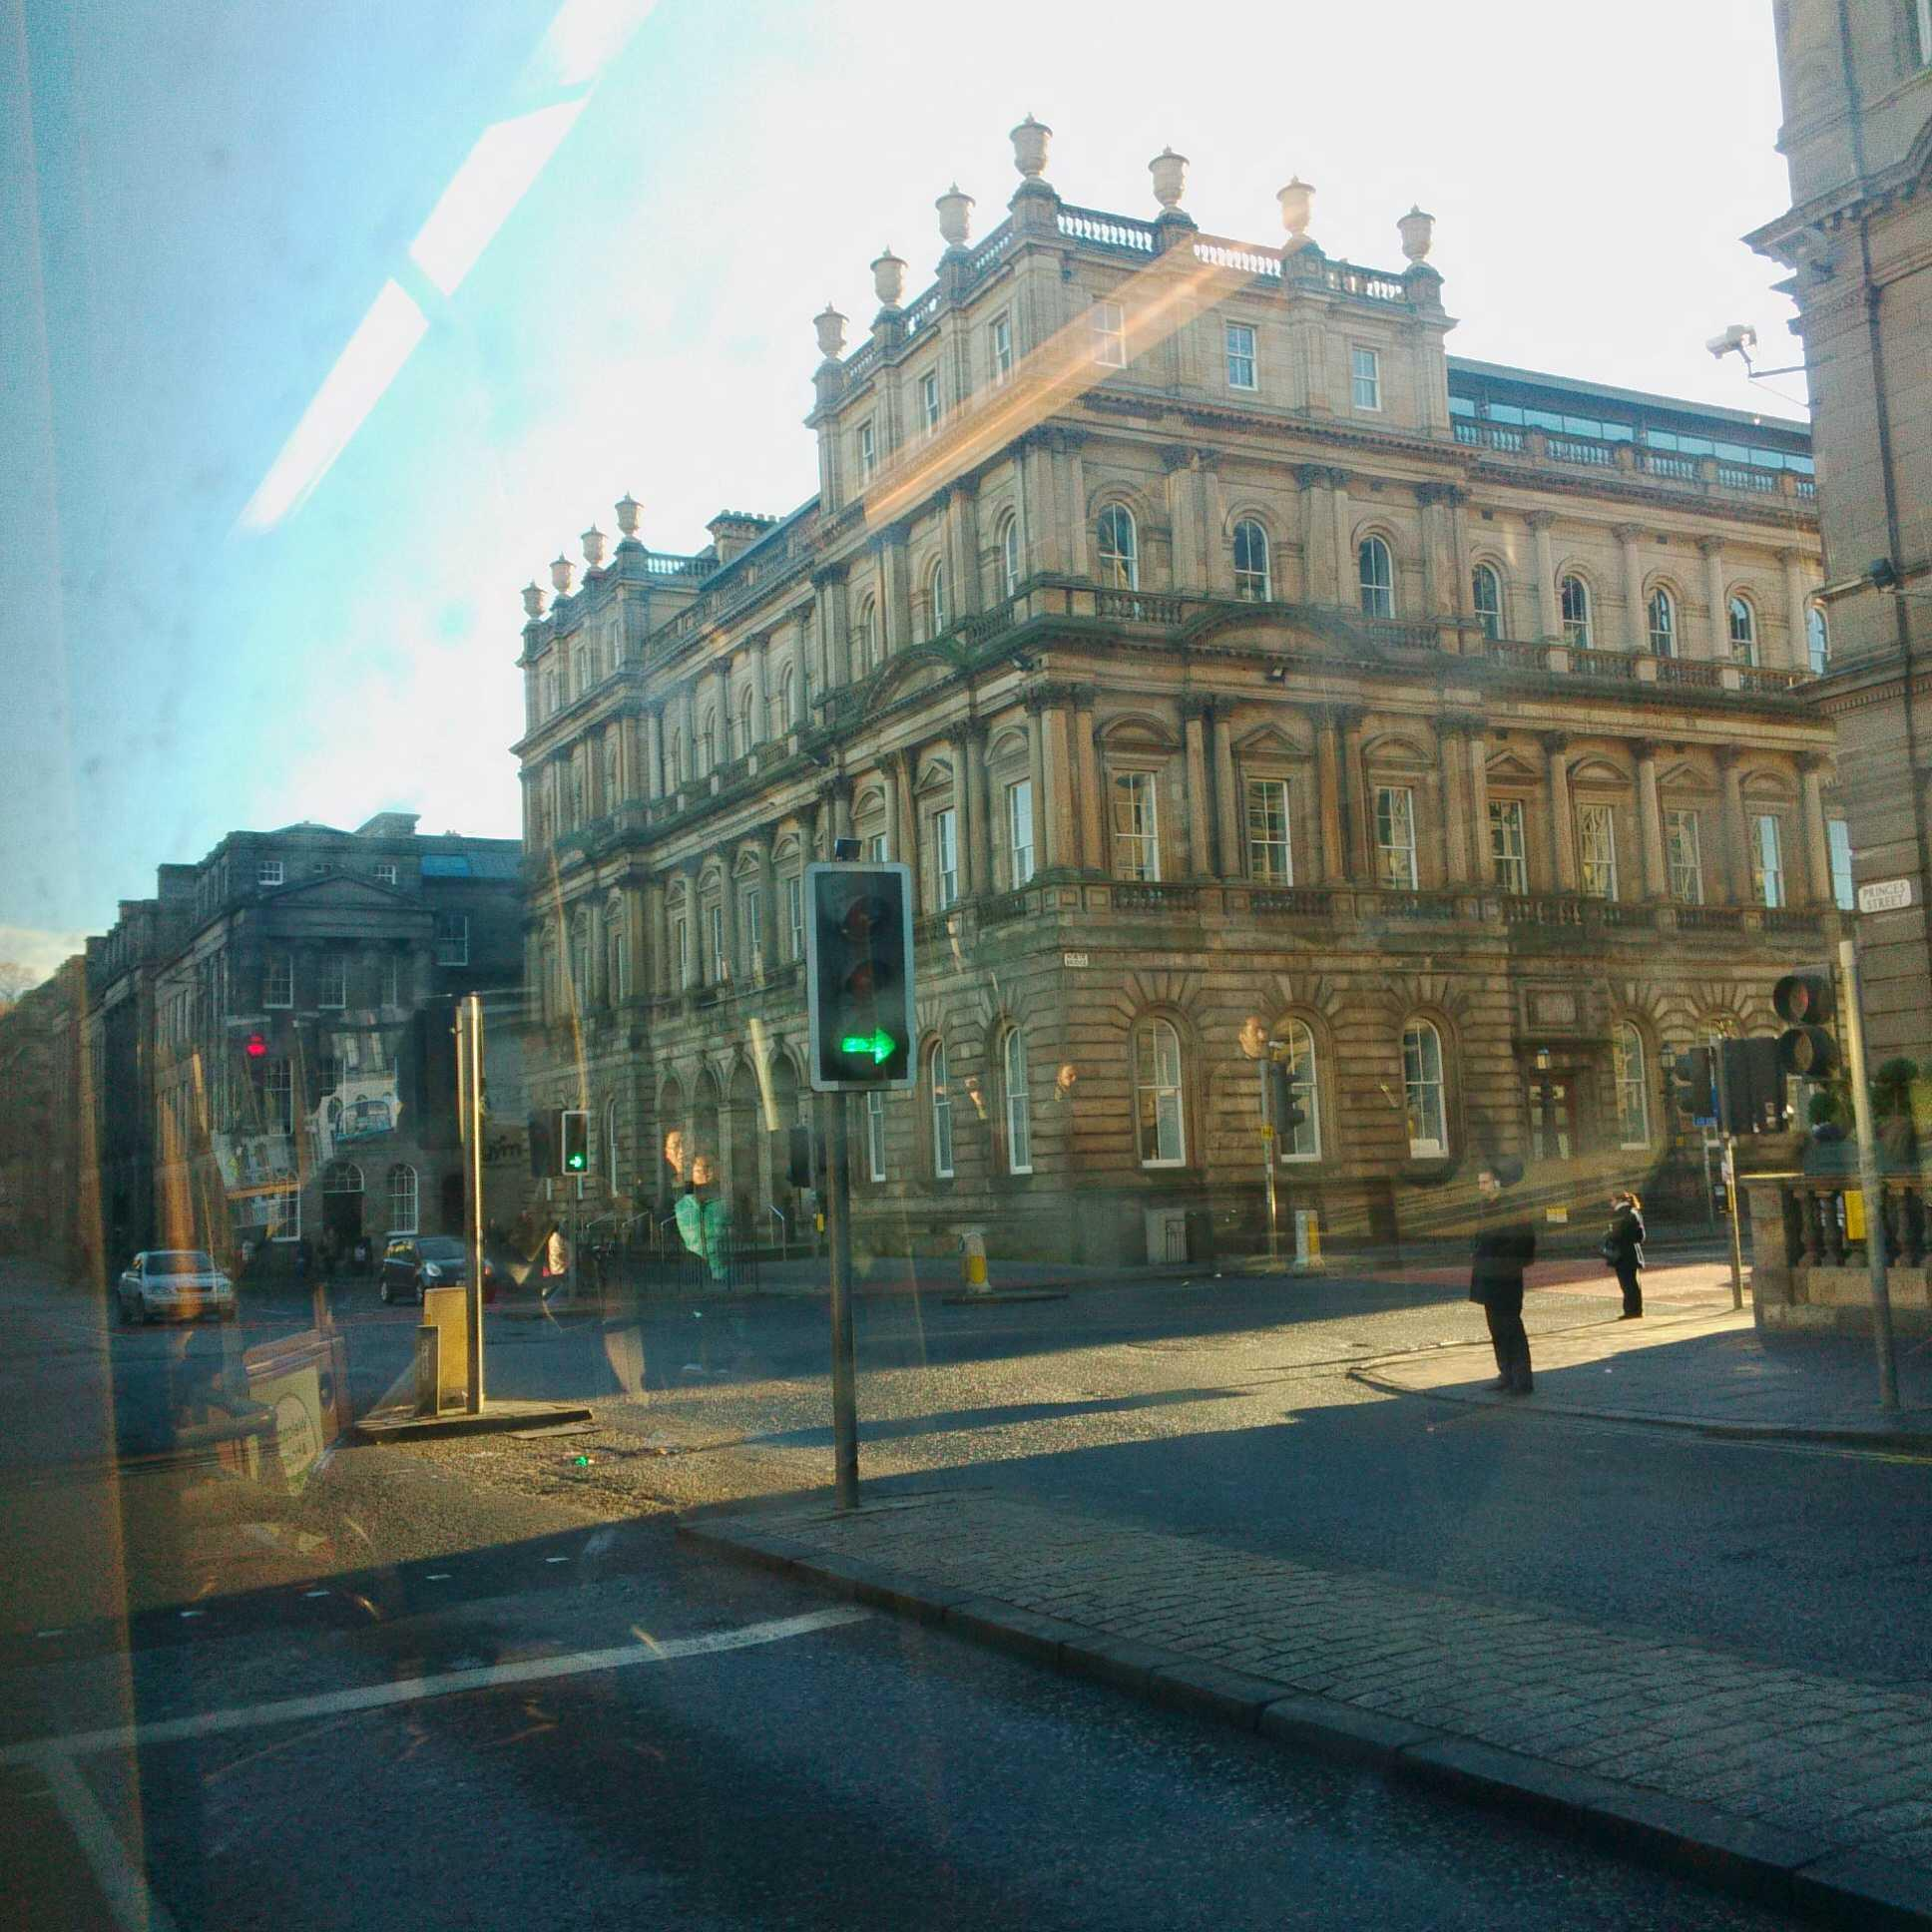 Twitter / DFActing: Edinburgh's gorgeous! #justsaying ...